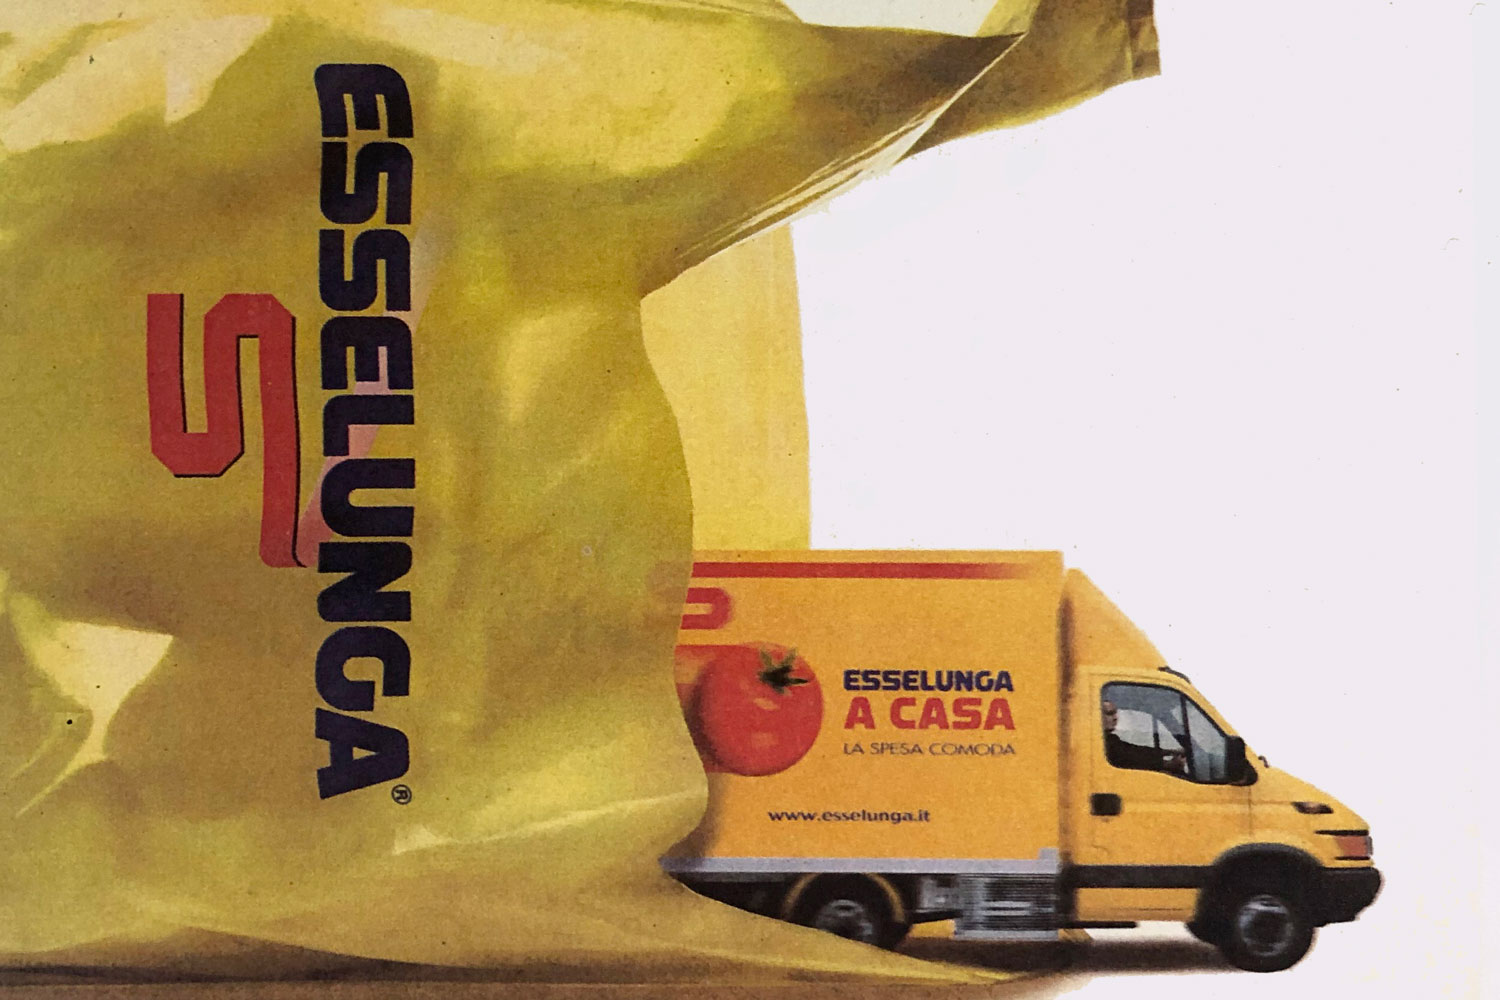 new arrival f28ae 69398 Esselunga e l'e-commerce, ovverosia Esselunga a Casa ...